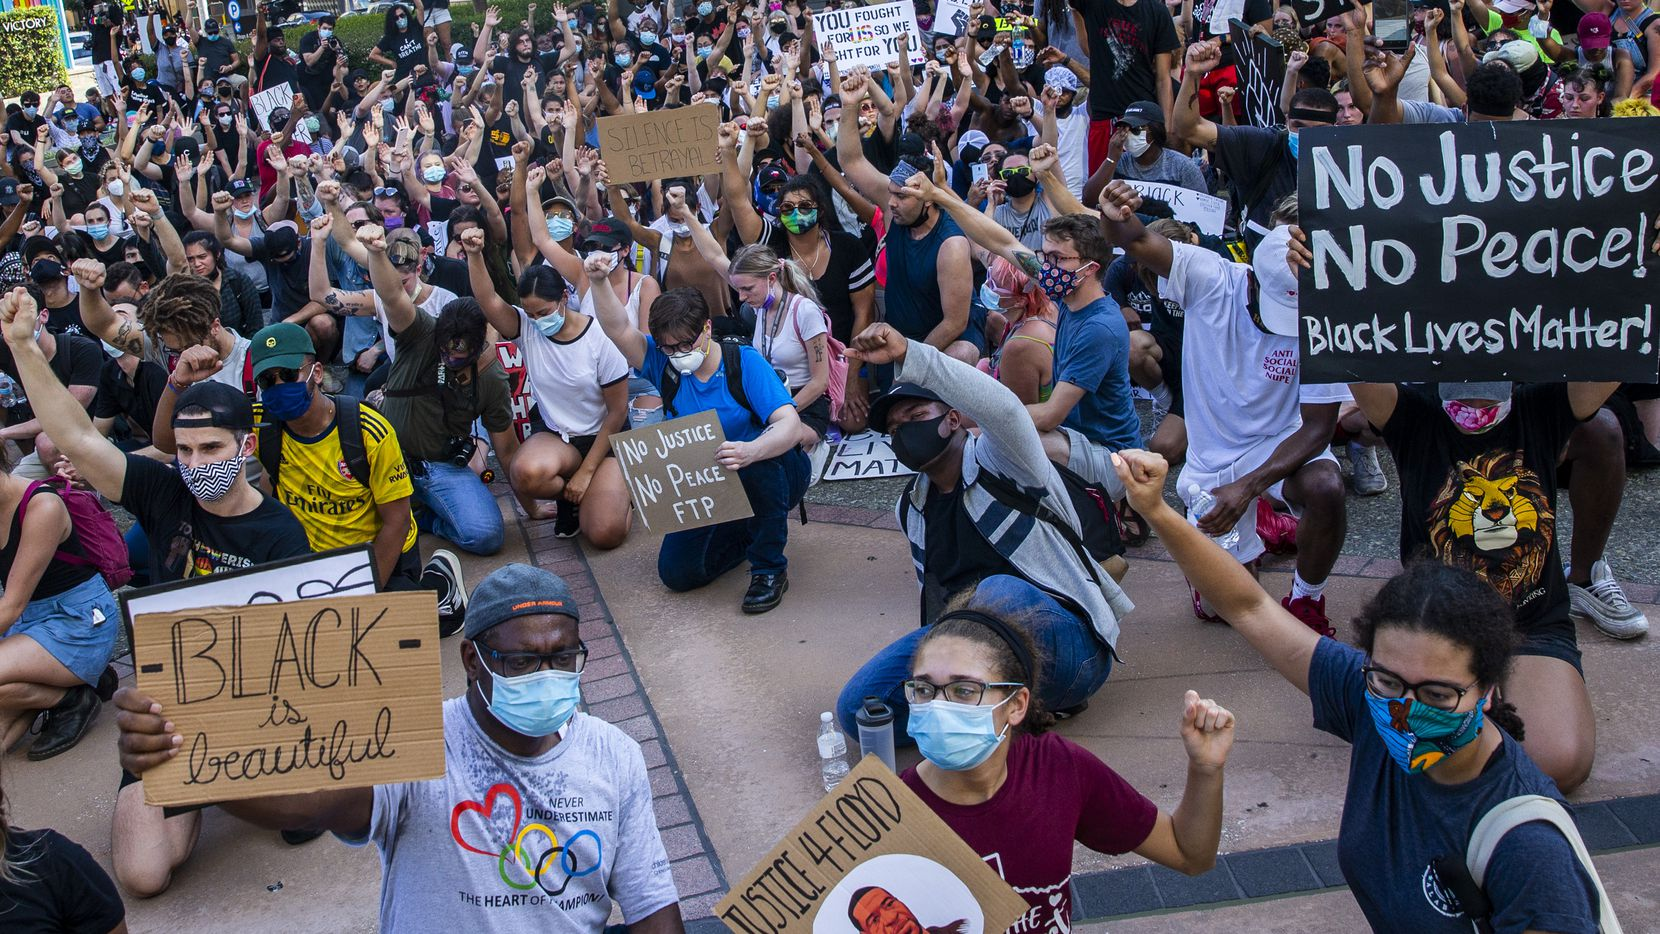 James Akemba (left) and his daughters Alexis (center), 16, and Jasmine, 15, join other protesters in taking a knee during a demonstration in front of the American Airlines Center to denounce police brutality and systemic racism in Dallas on Thursday, June 4, 2020. The demonstration took place on the seventh consecutive day of organized protests in response to the recent deaths of George Floyd in Minneapolis and Breonna Taylor in Louisville.